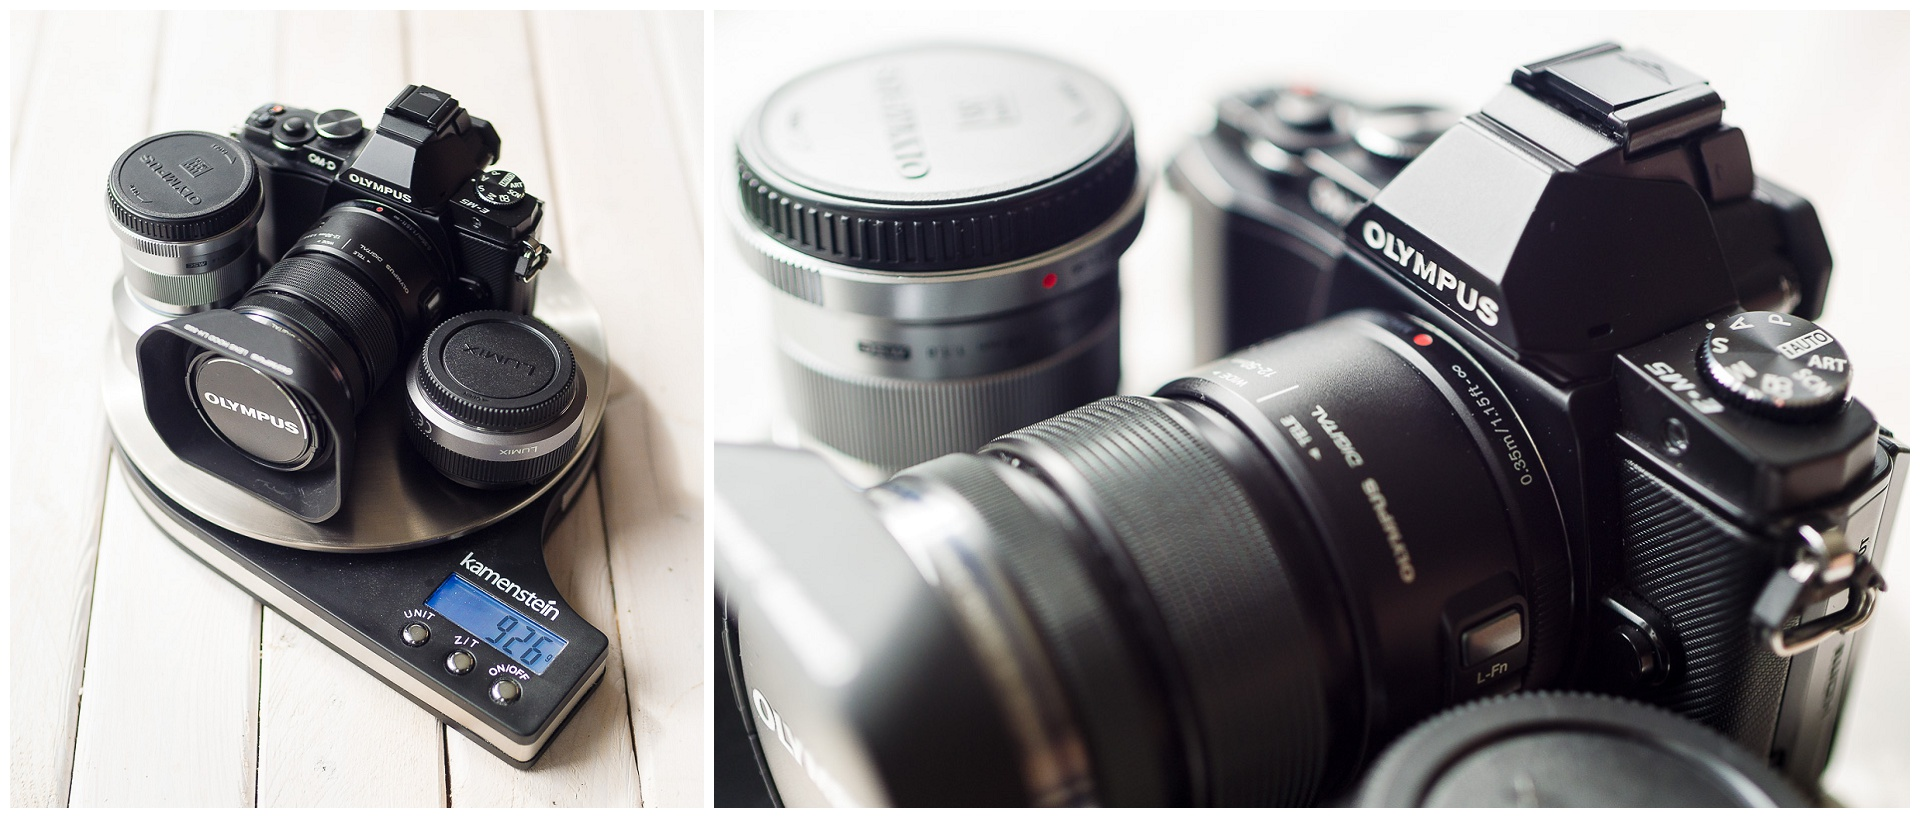 My first mirrorless kit: Olympus OM-D E-M5 with 12-50mm, Olympus 45mm f/1,8 and Panasonic 20mm f/1,7